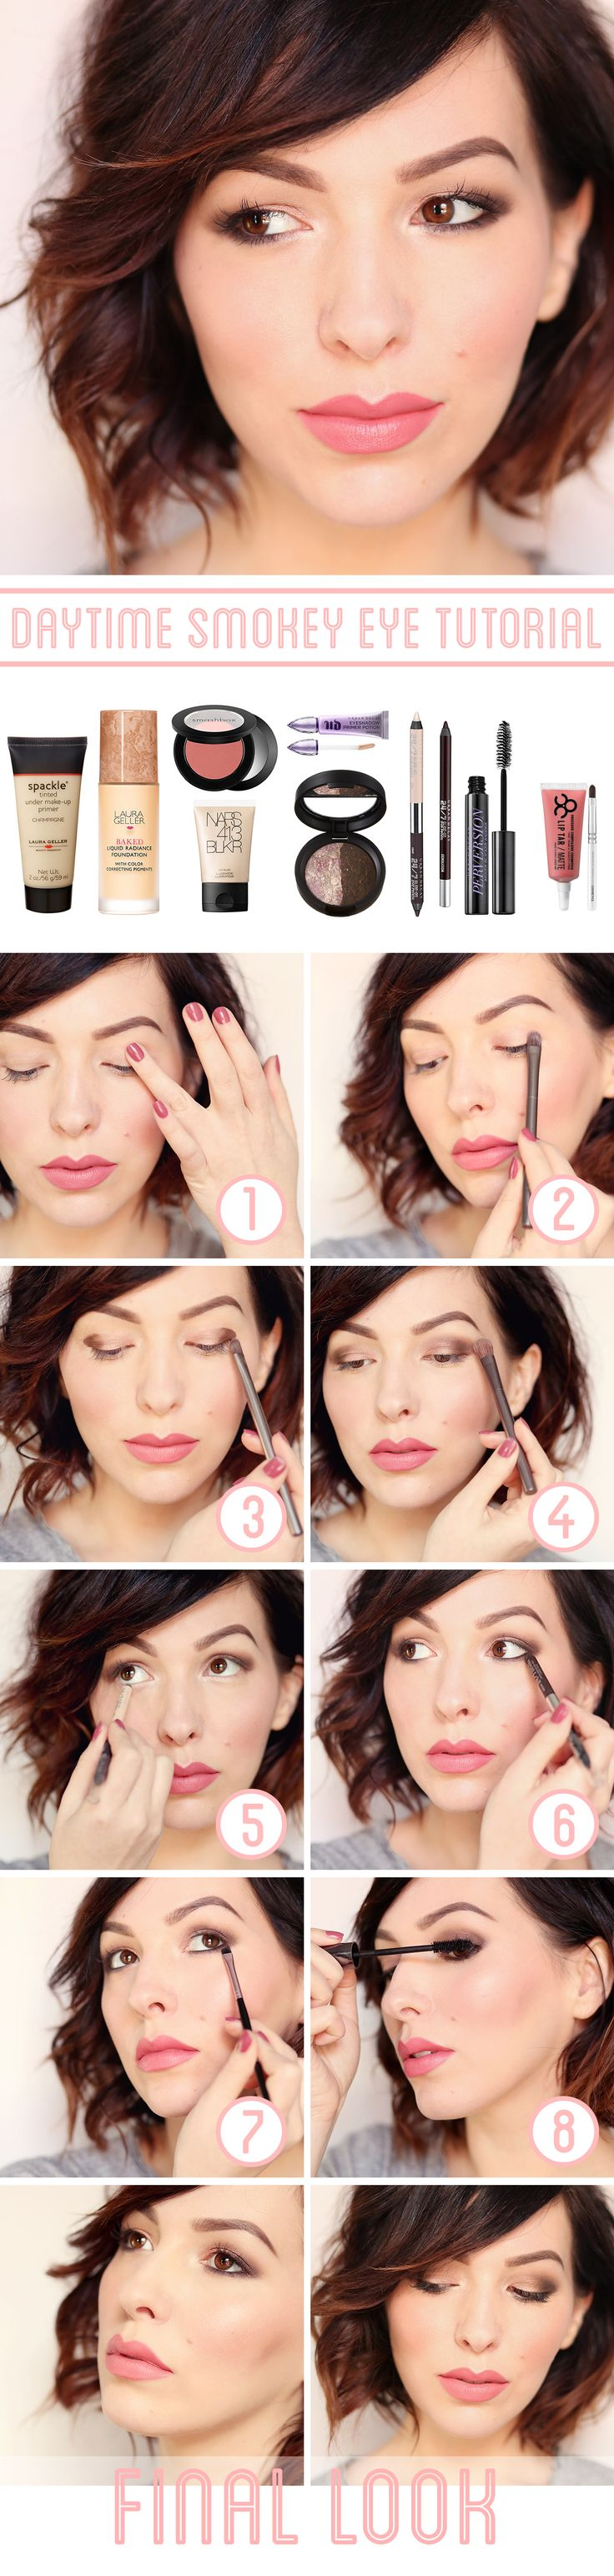 How to achieve the ever-challenging daytime smokey eye.